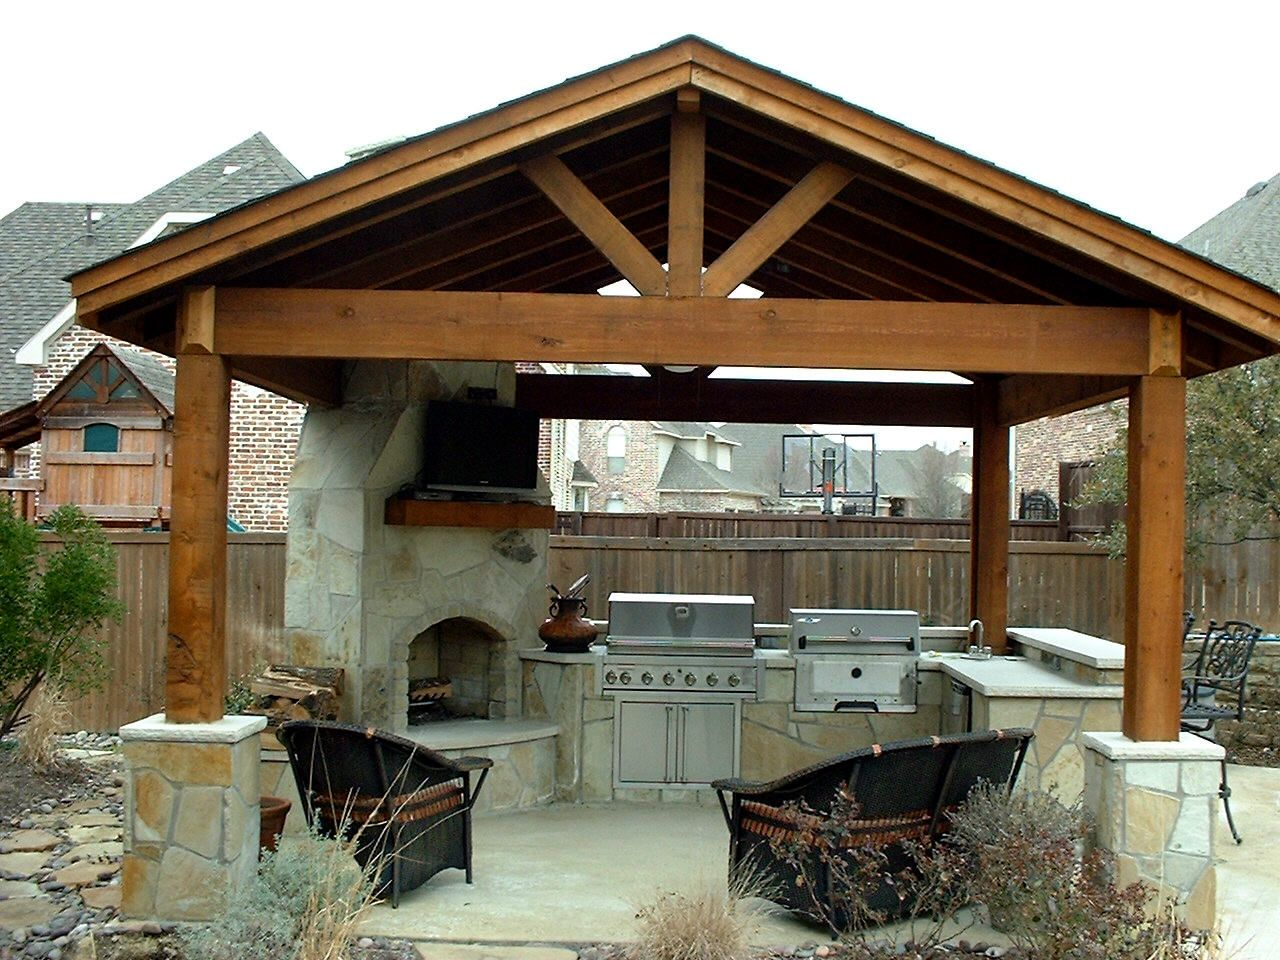 Uncategorized Outdoor Kitchens Designs best 10 outdoor kitchen design ideas on pinterest patio idea